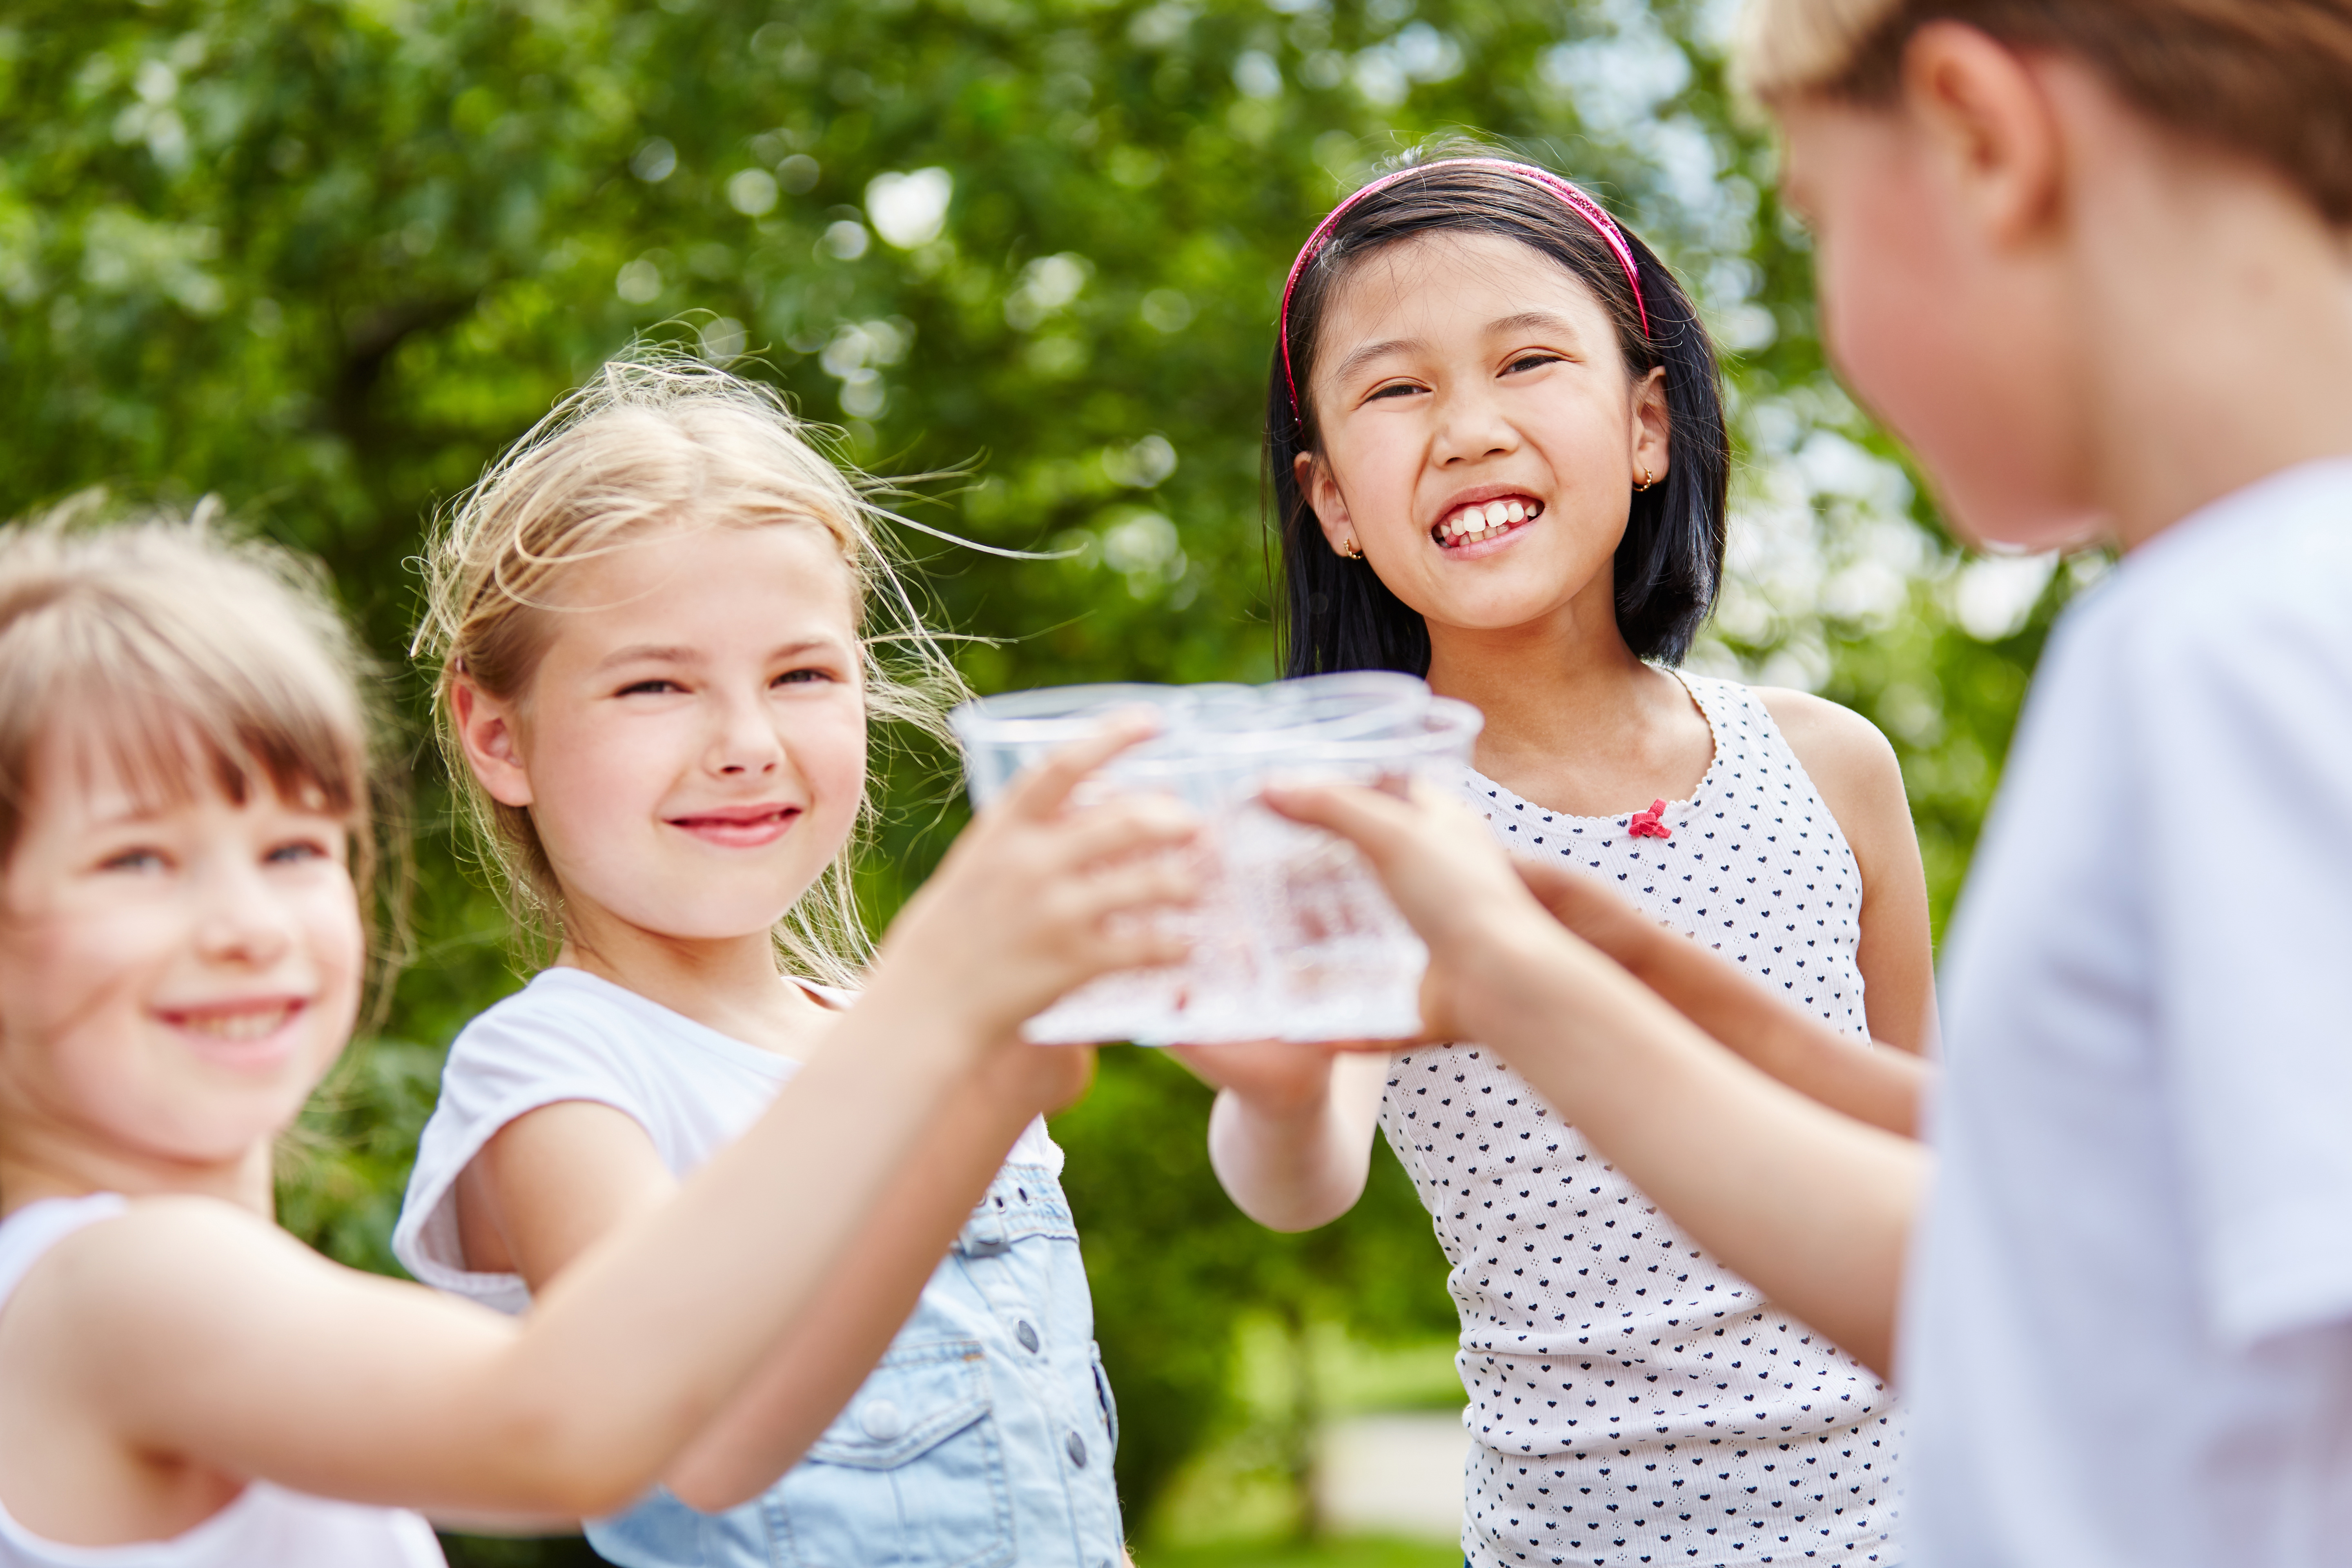 Cheers to healthy water!